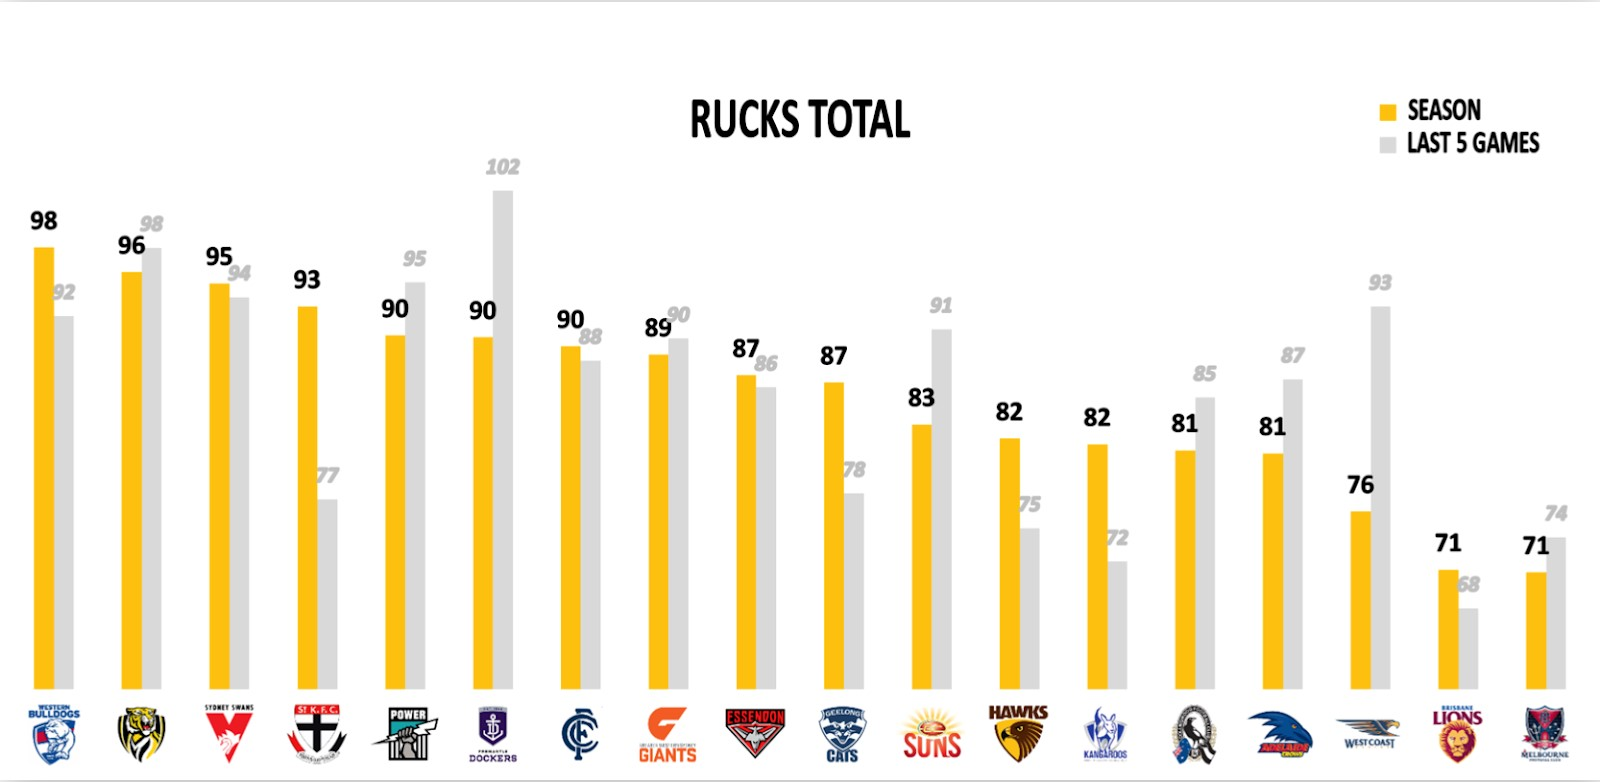 Points Against - Rucks